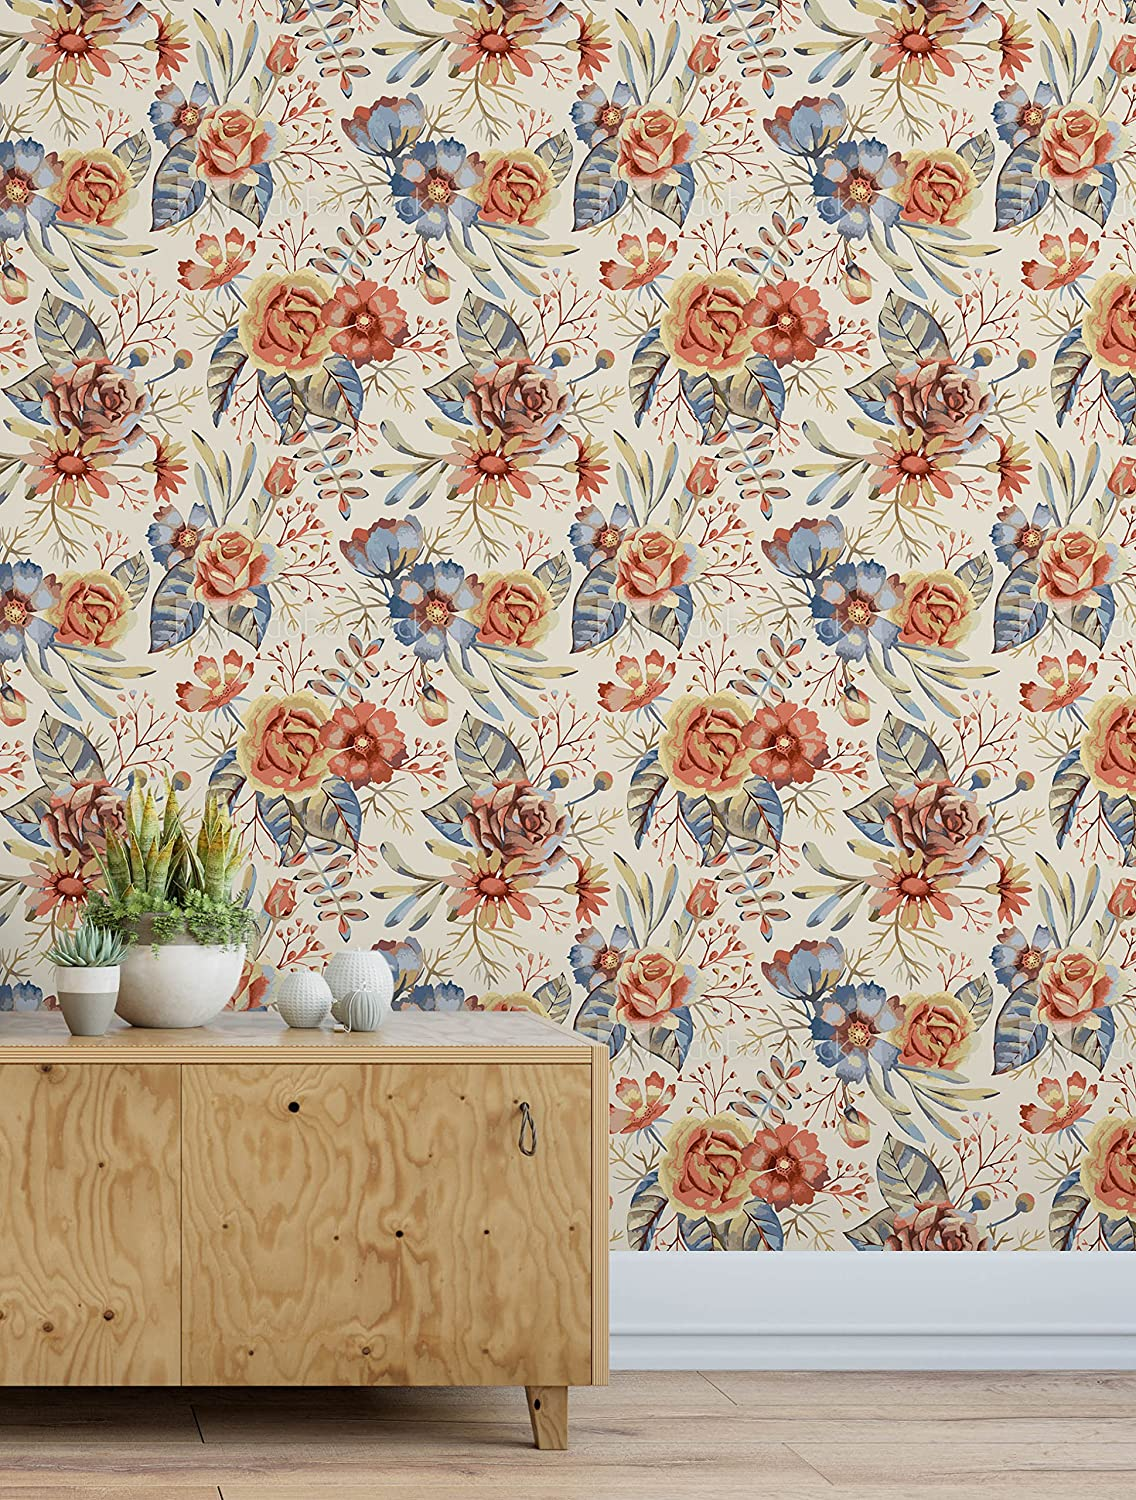 Amazon Com Vintage Floral Self Adhesive Removable Wallpaper